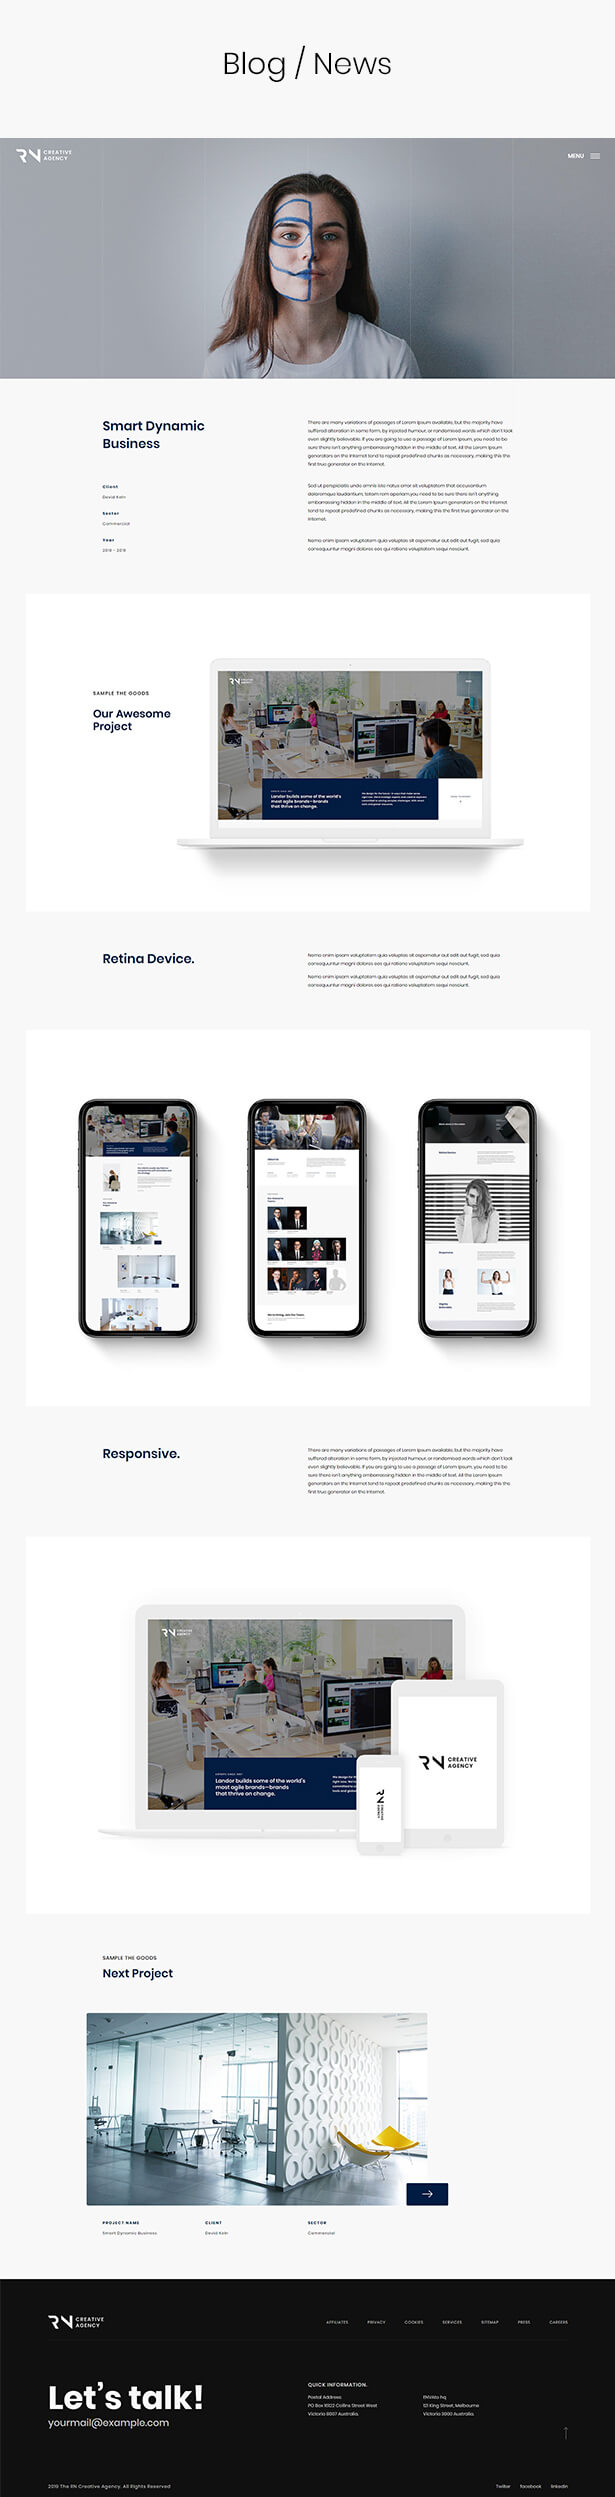 TheRN - Creative Agency HTML5 Template - 5